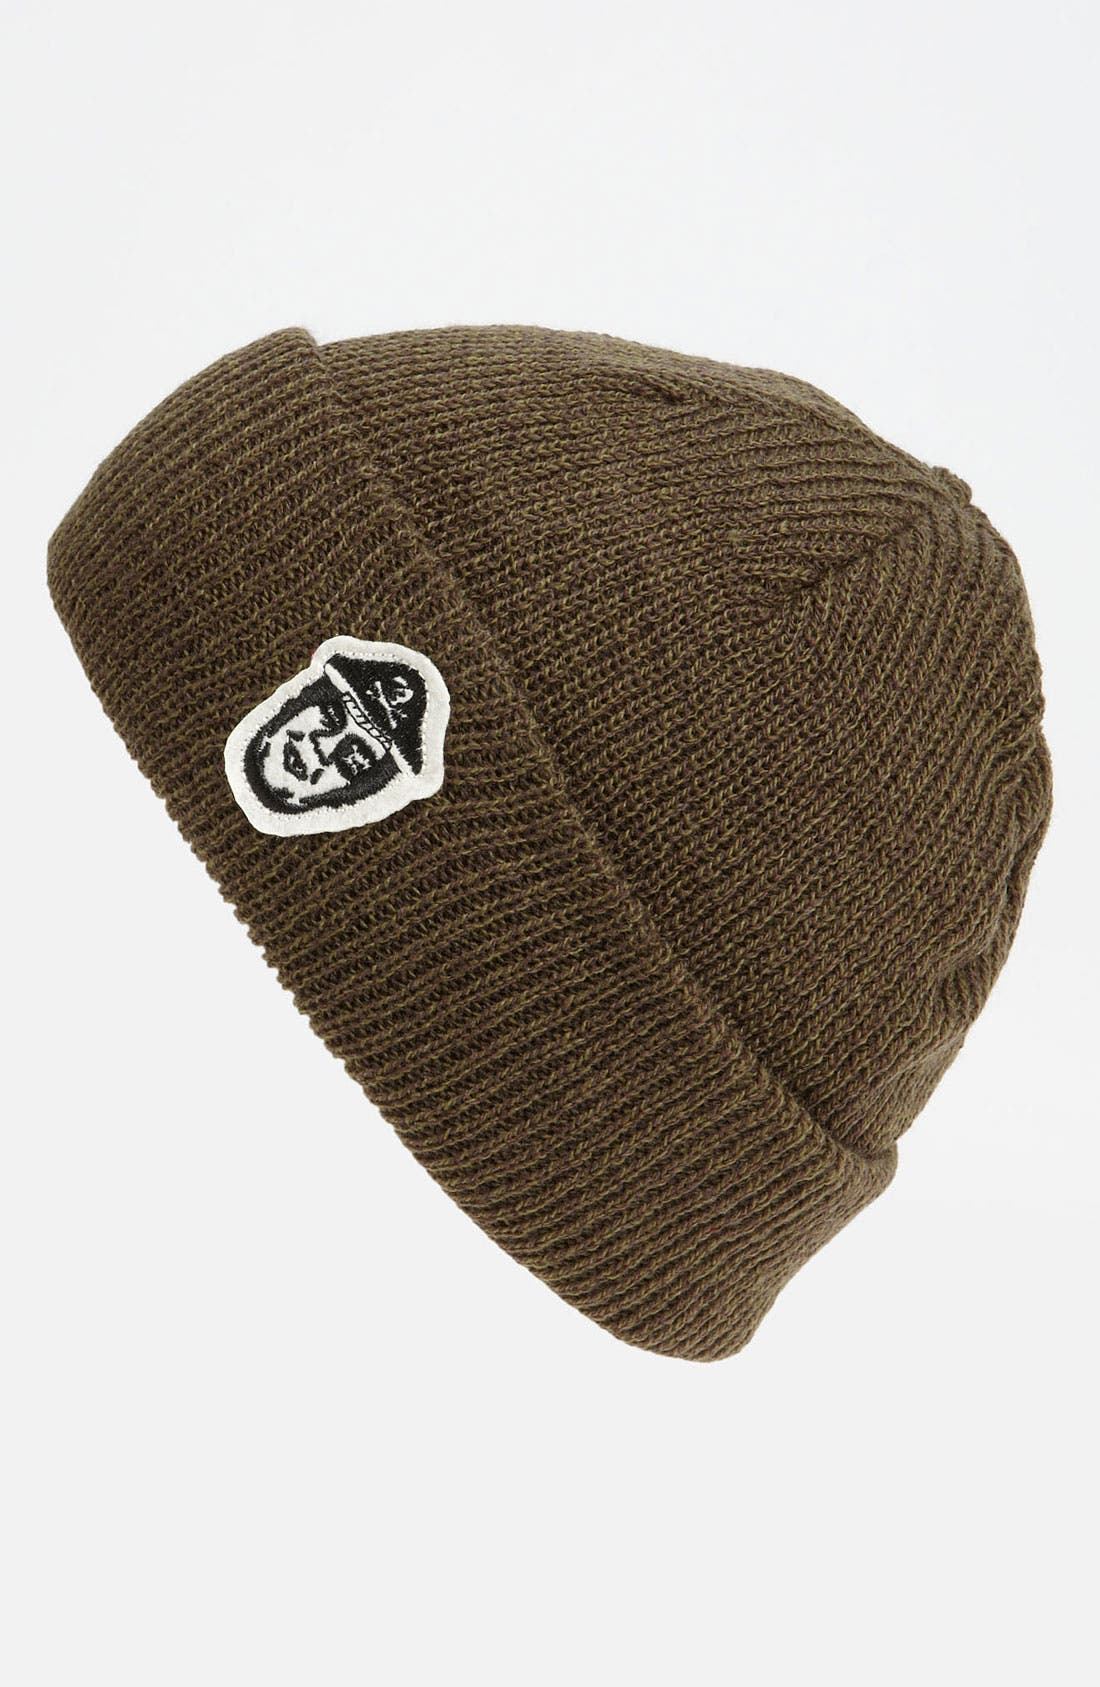 Main Image - Obey 'Avast' Knit Cap